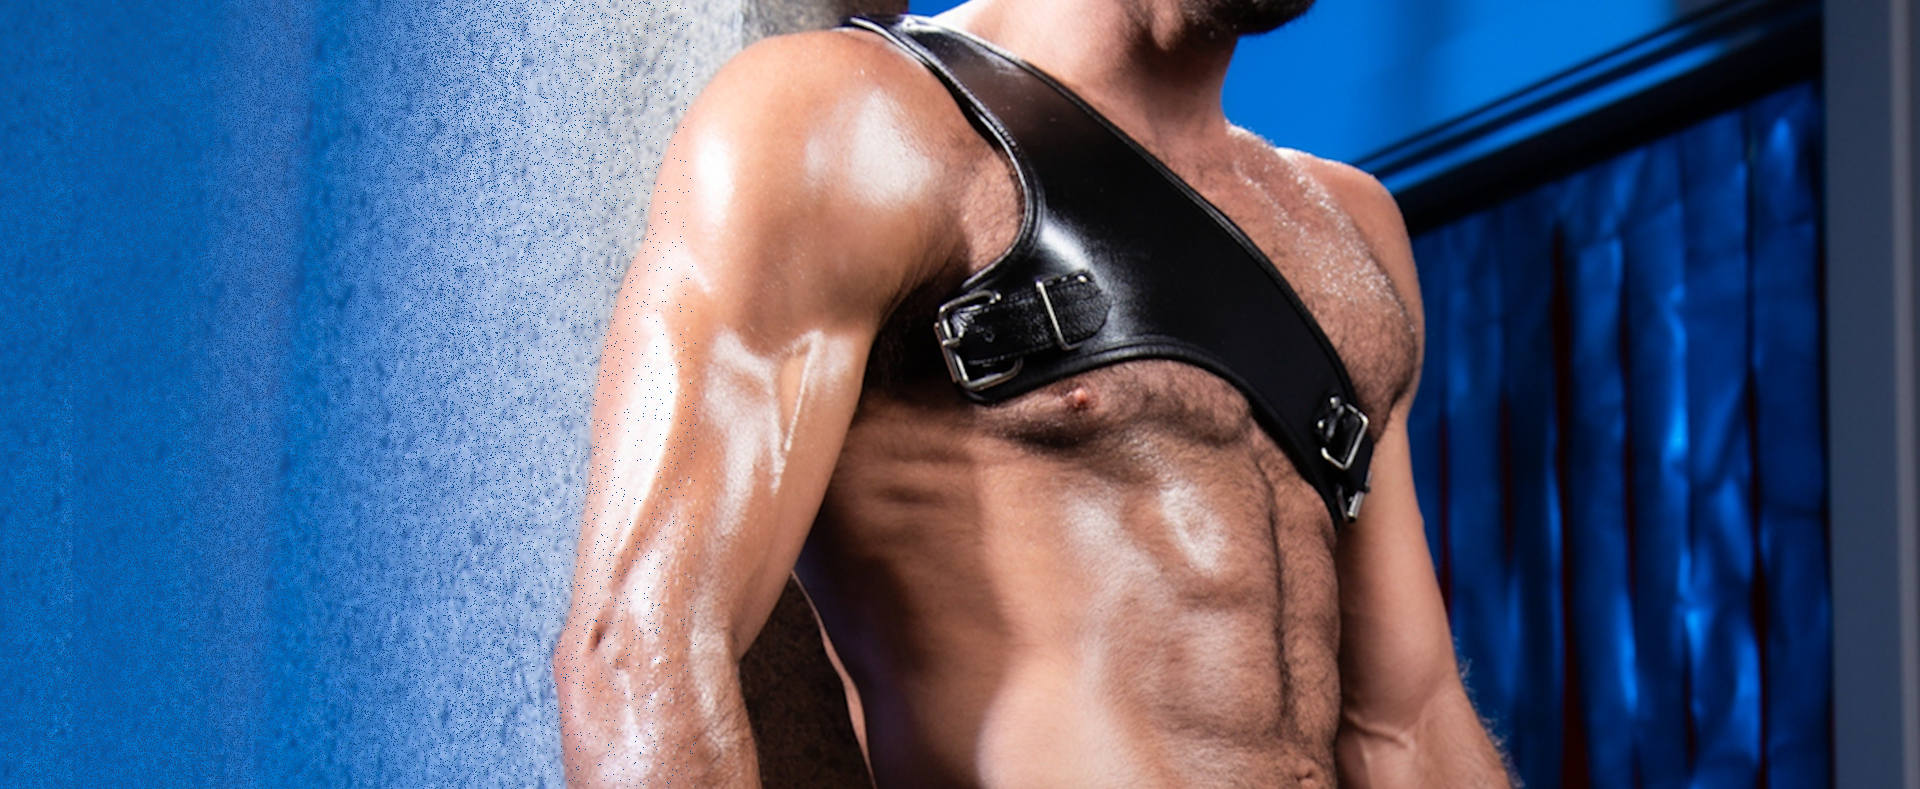 Best gay harness guide